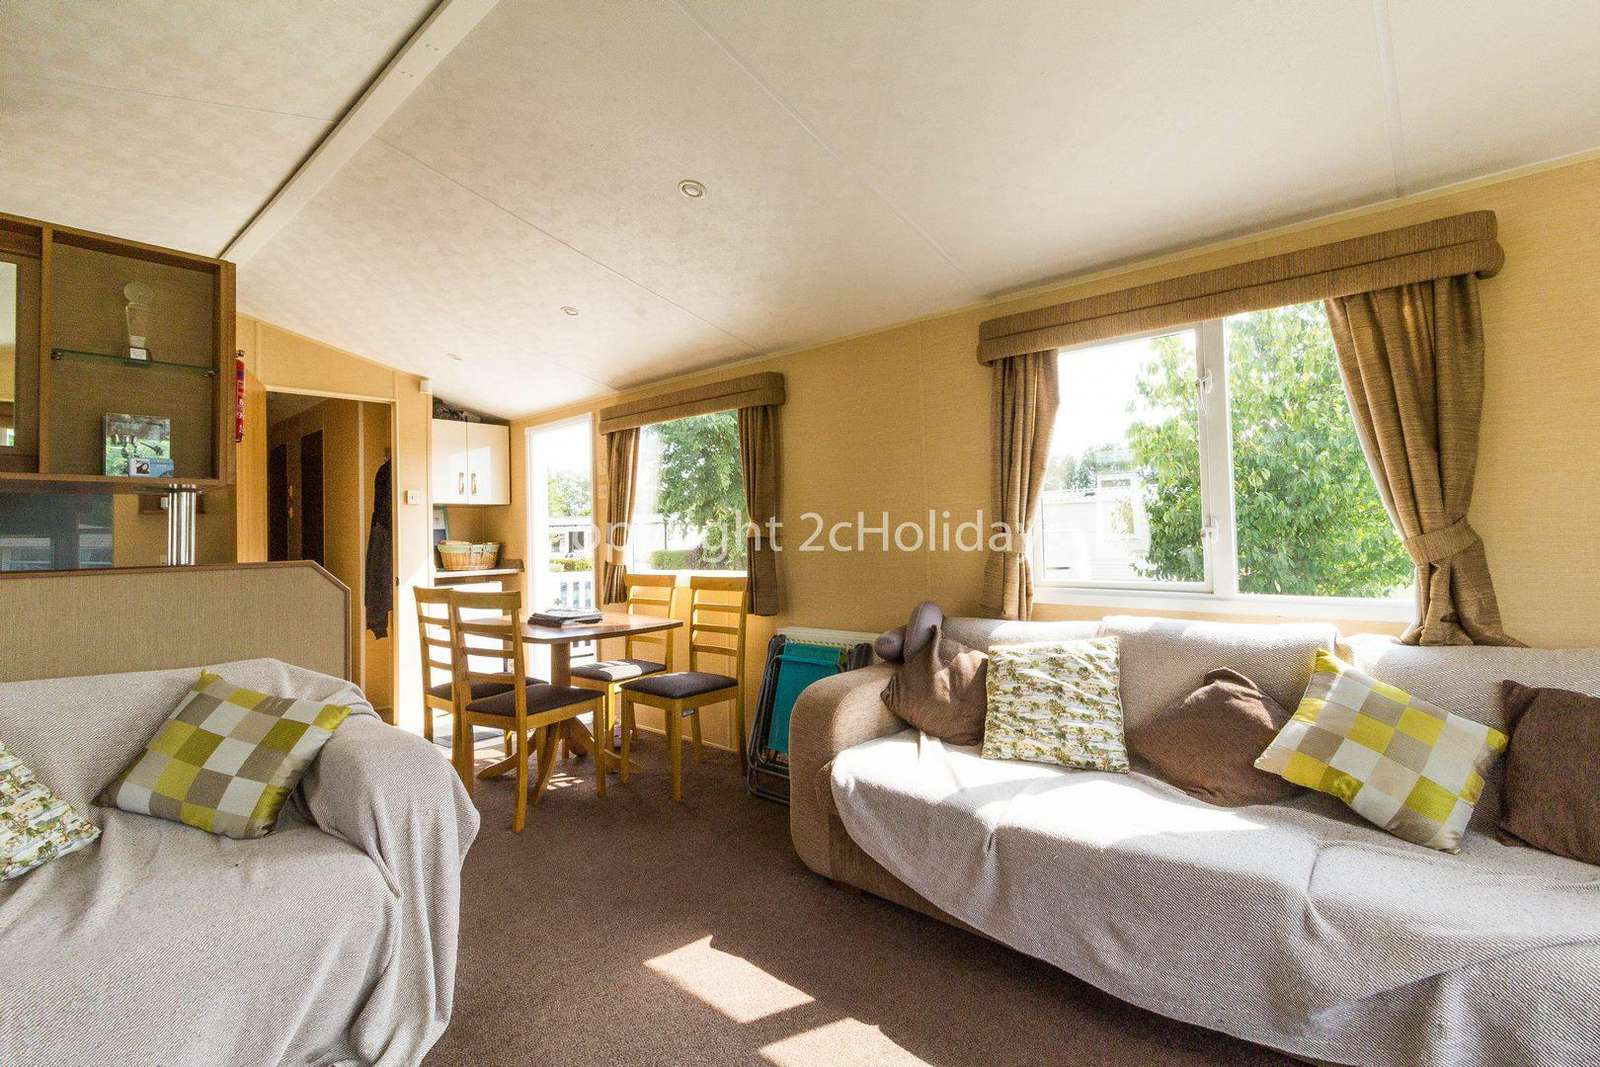 Come and stay in this private accommodation at Southview Holiday Park